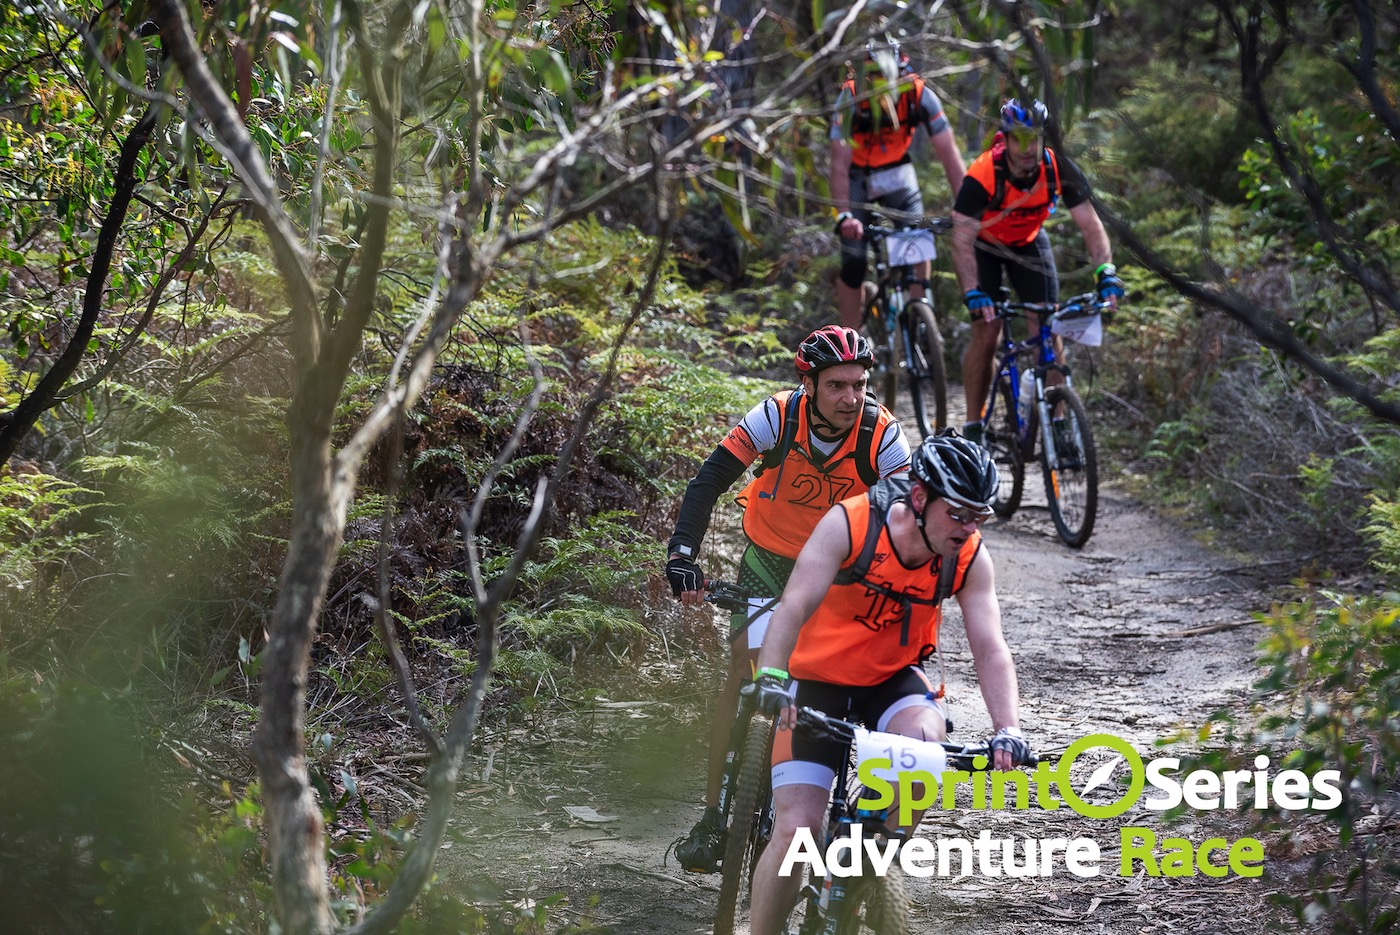 sprint series adventure race mountain bike